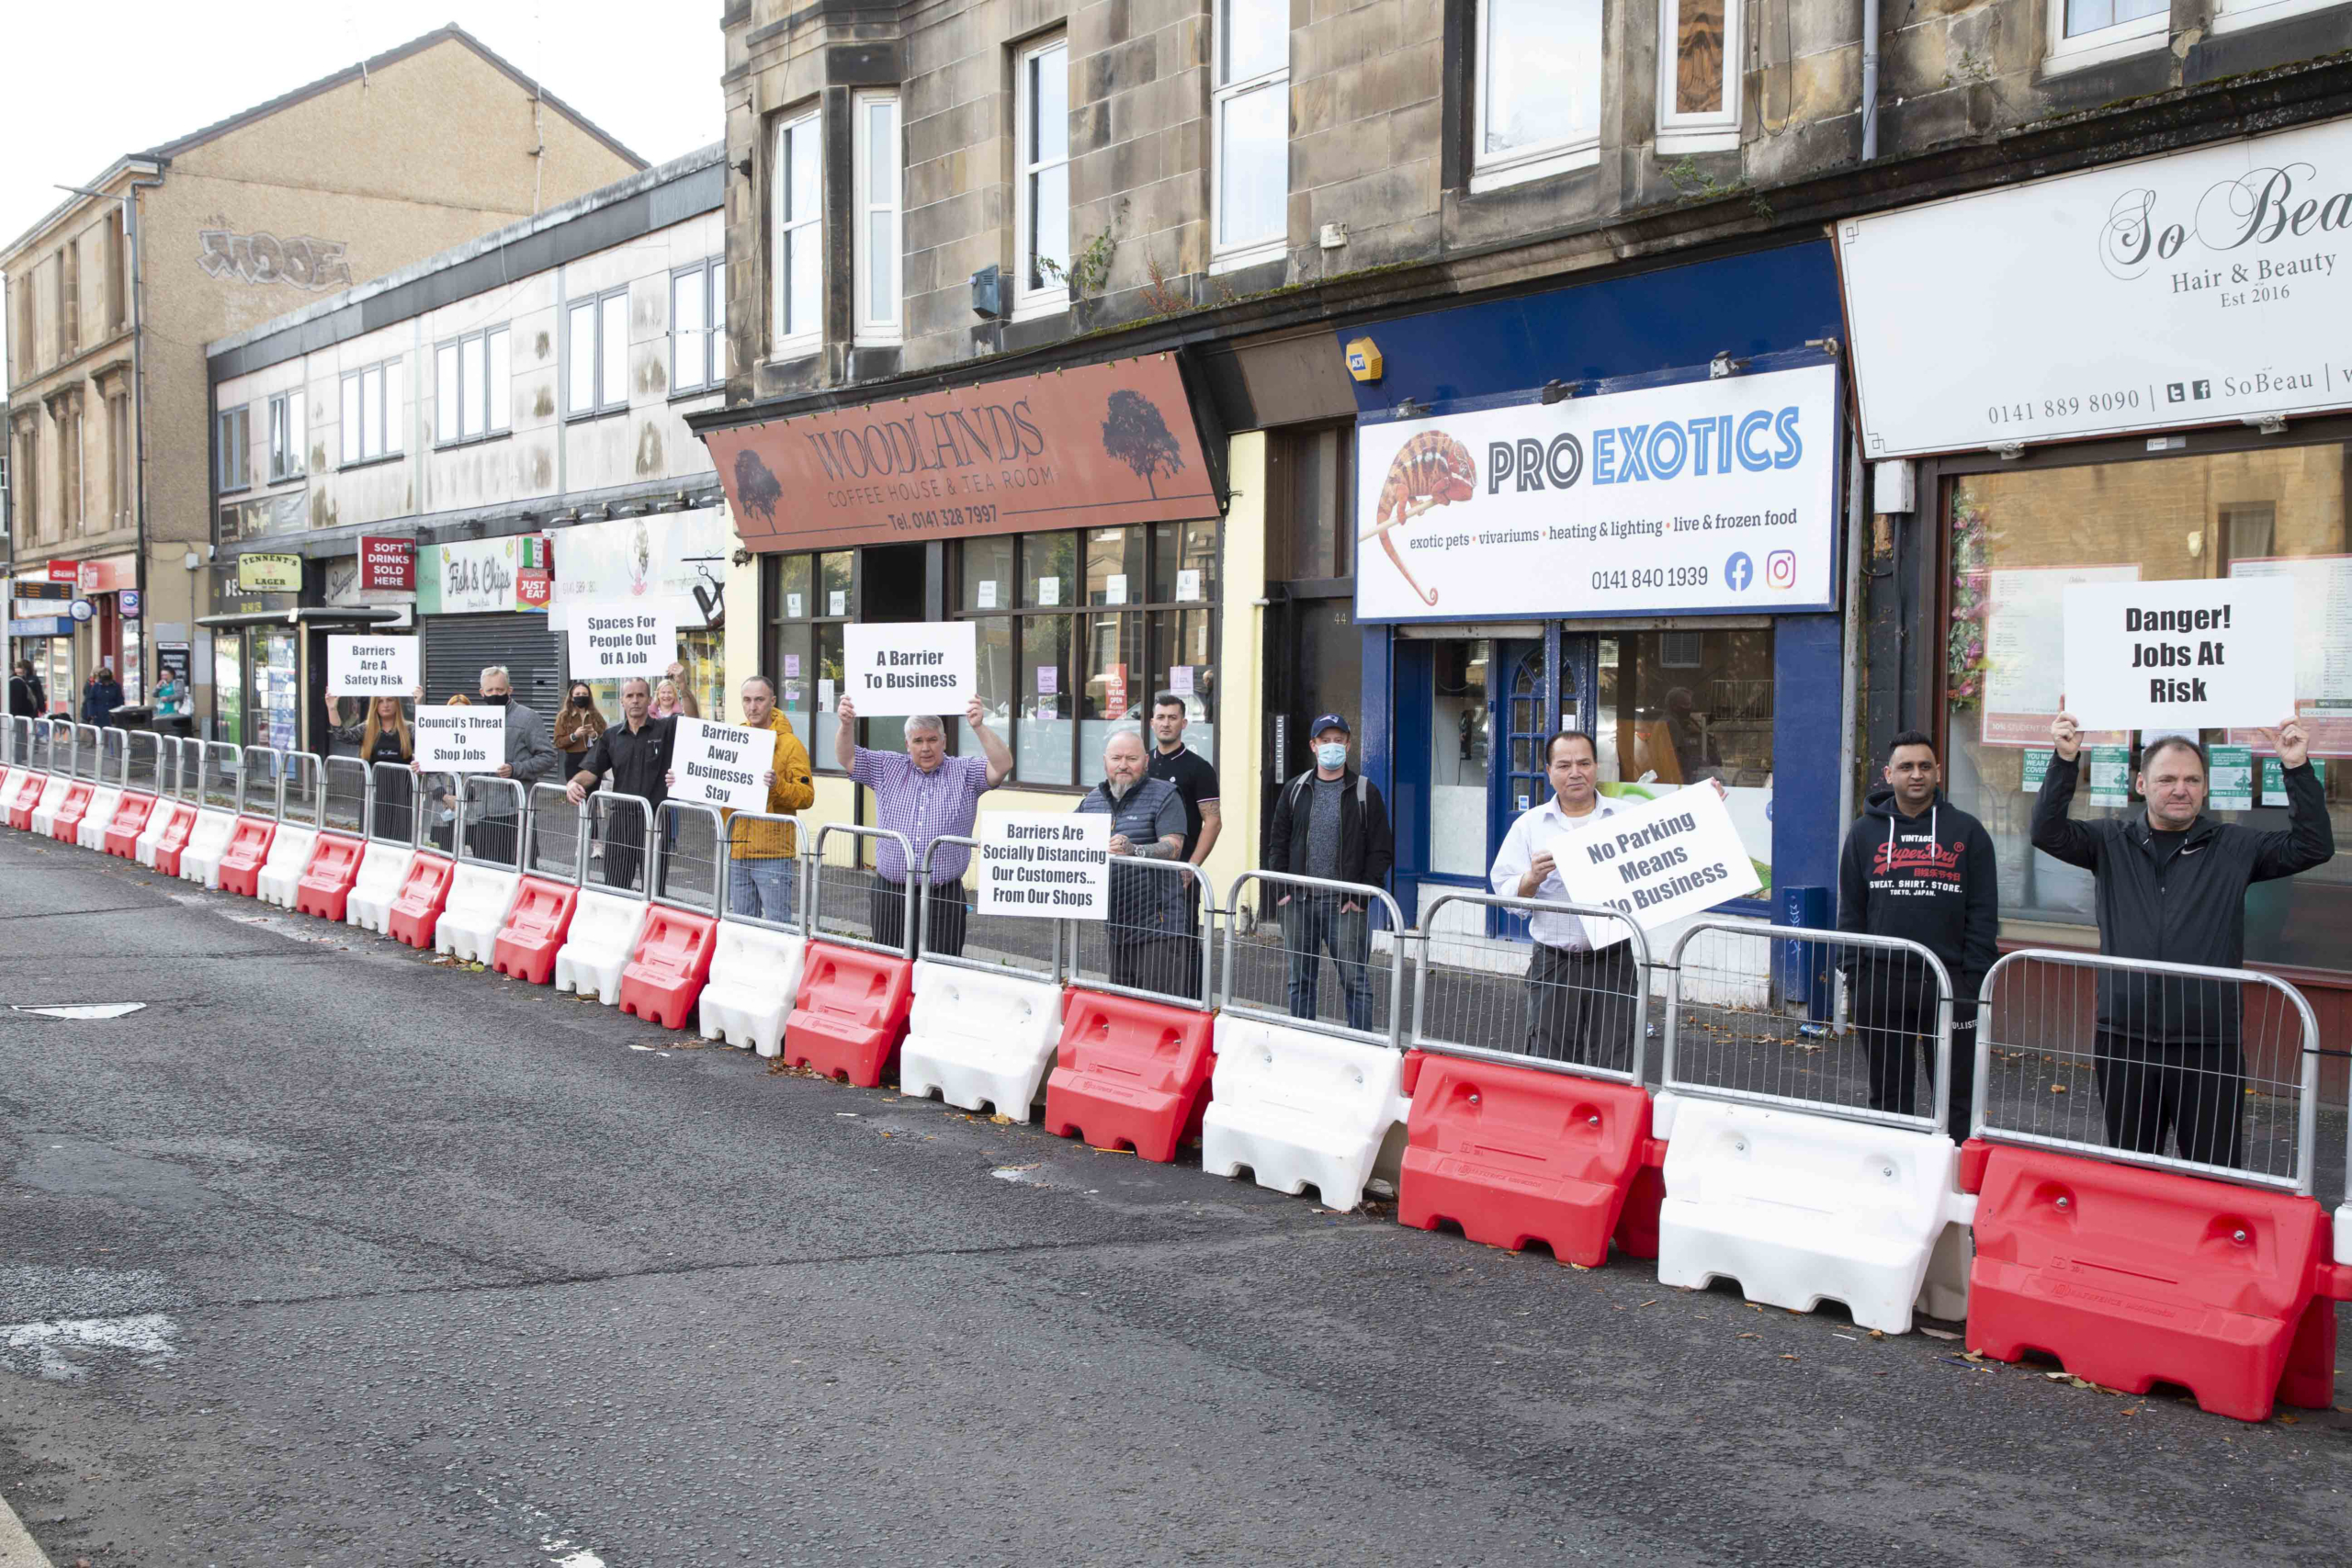 Paisley Barrier